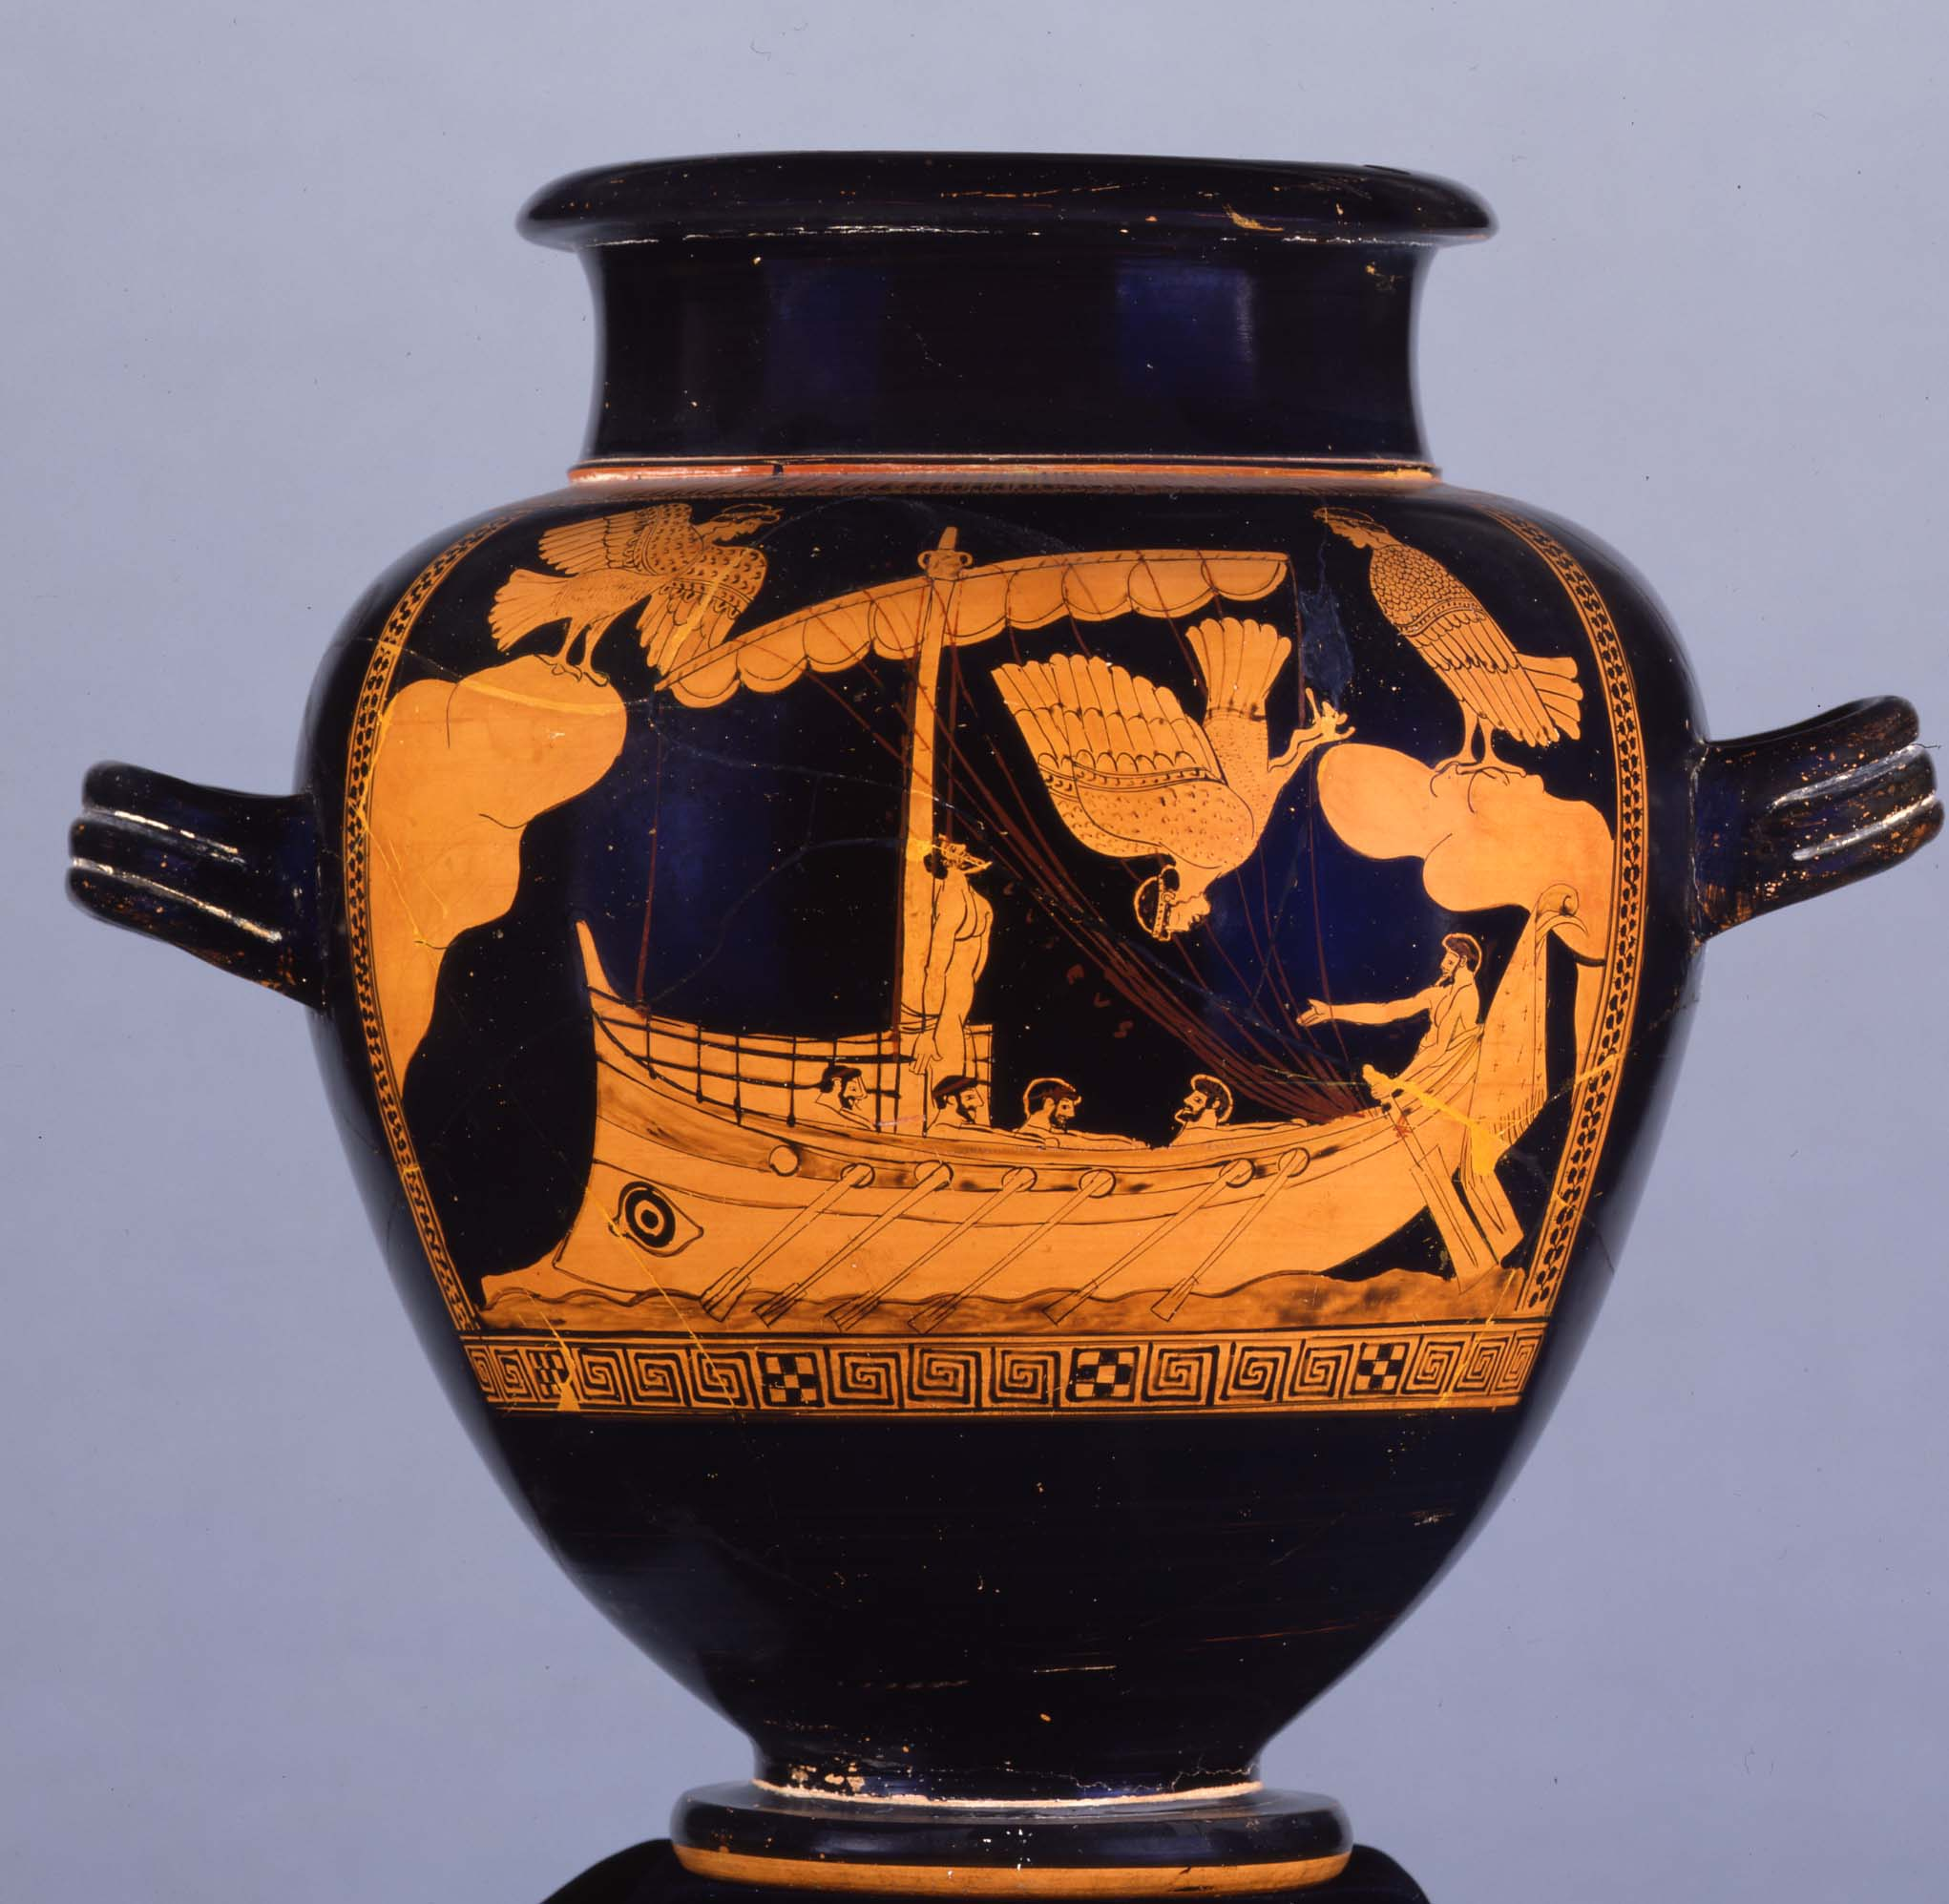 Red-figured stamnos showing Odysseus and the Sirens. © The Trustees of the British Museum